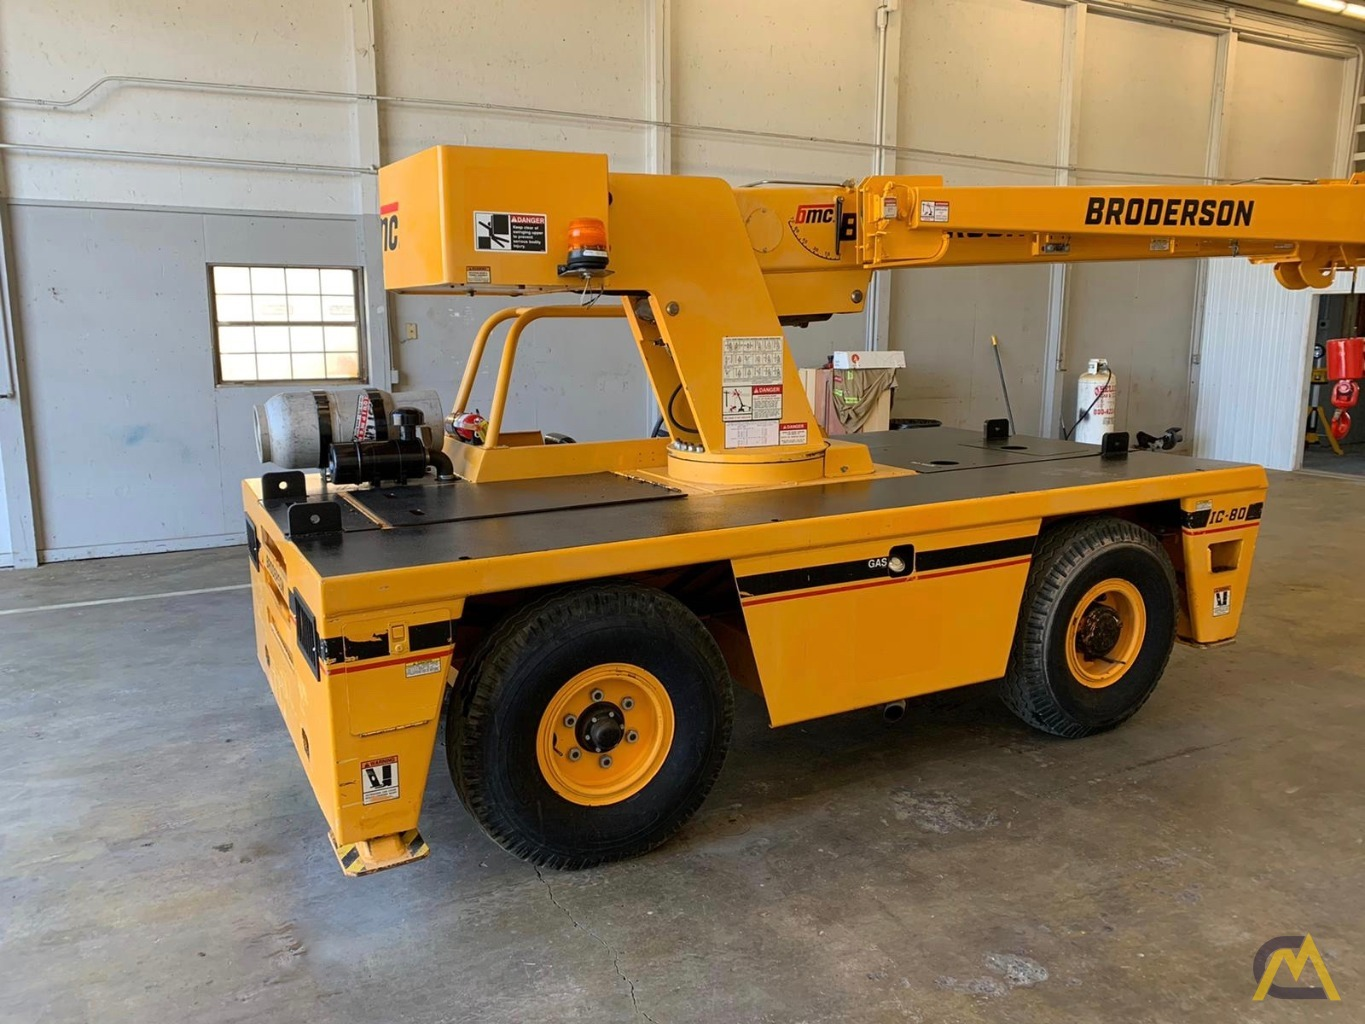 Broderson IC-80-3F 9-Ton Compact Carry Deck Crane 8